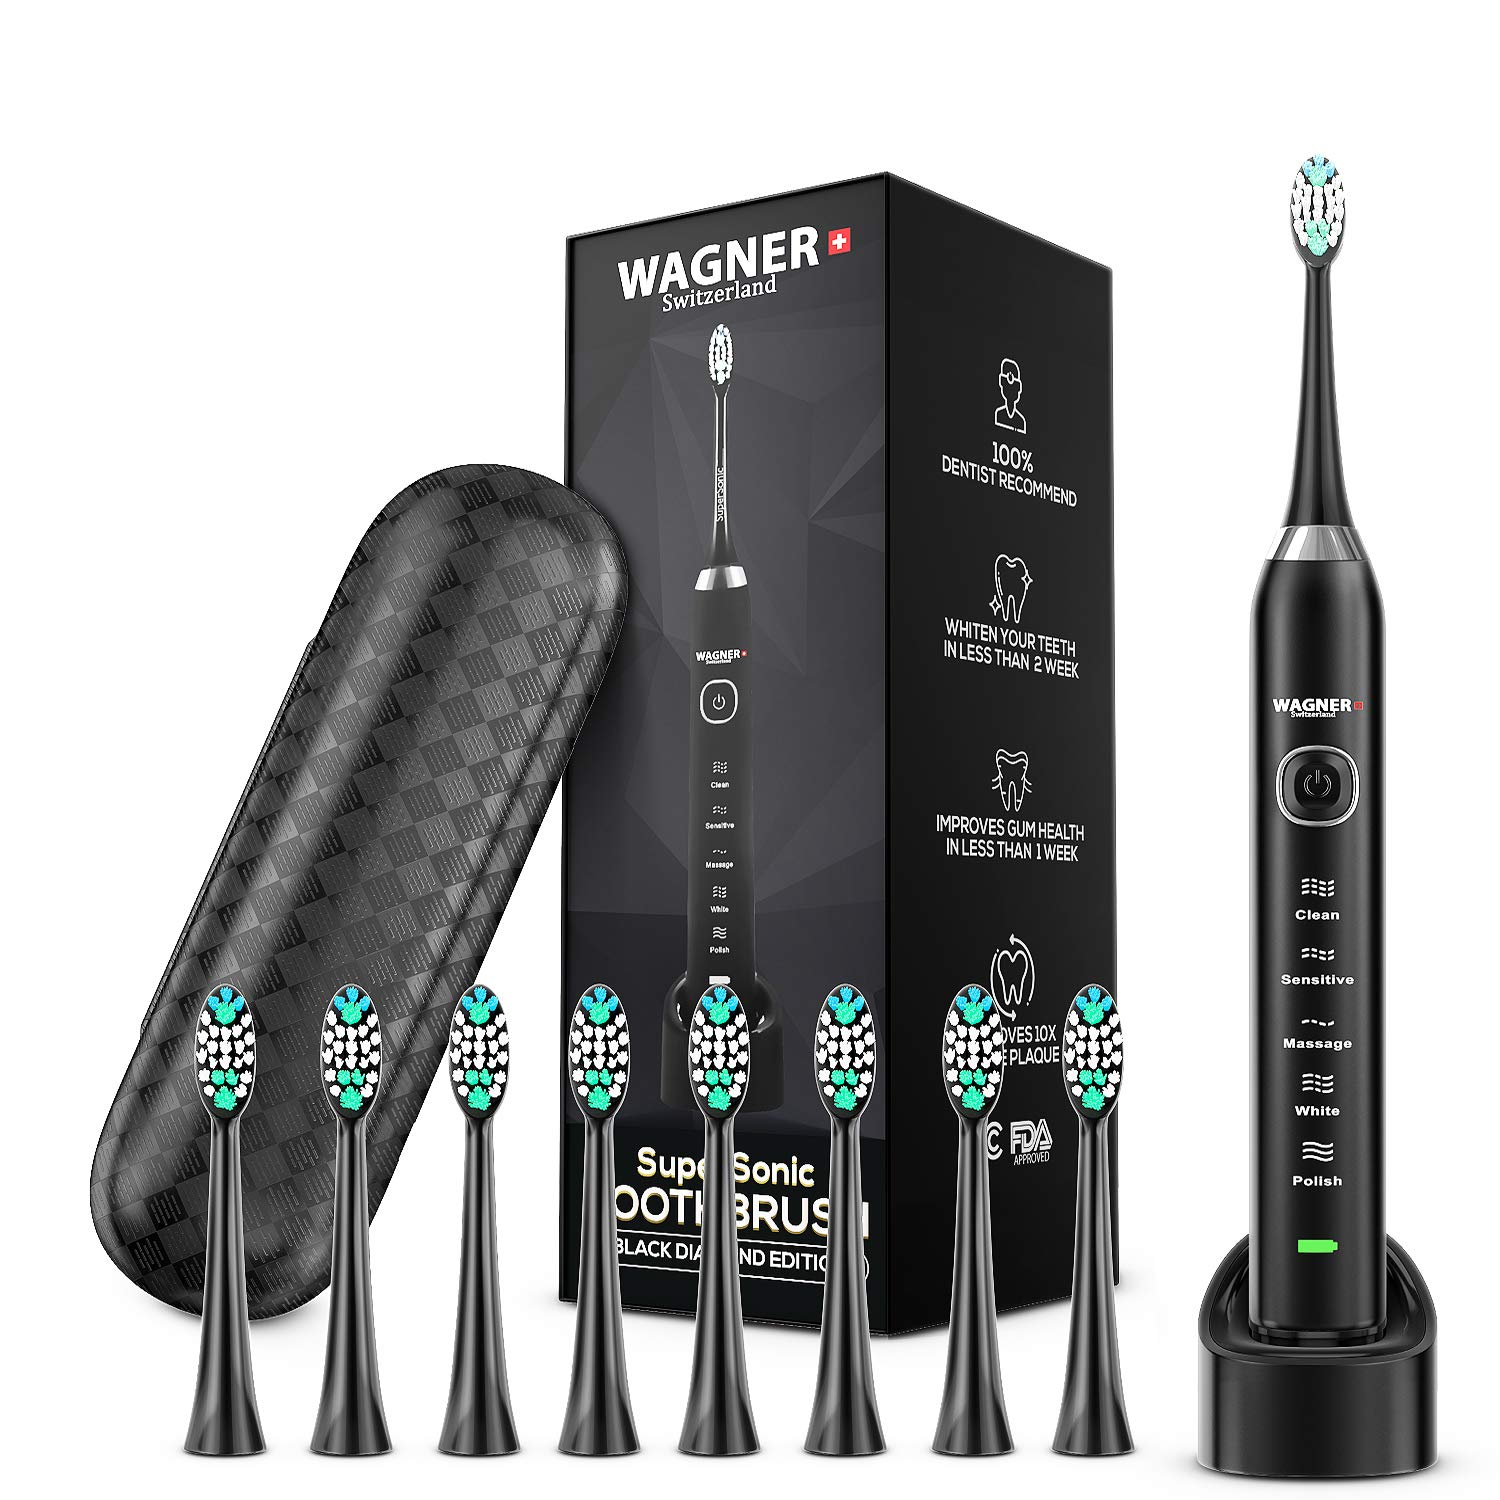 WAGNER Switzerland. ULTRA Whitening Toothbrush | 8 DuPont Bristles | SuperSonic 5 Modes w Smart Timer | 48,000 VPM | Wireless | Premium Travel Case | 100% Dentist Recommended & Designed. Black by WAGNER Switzerland